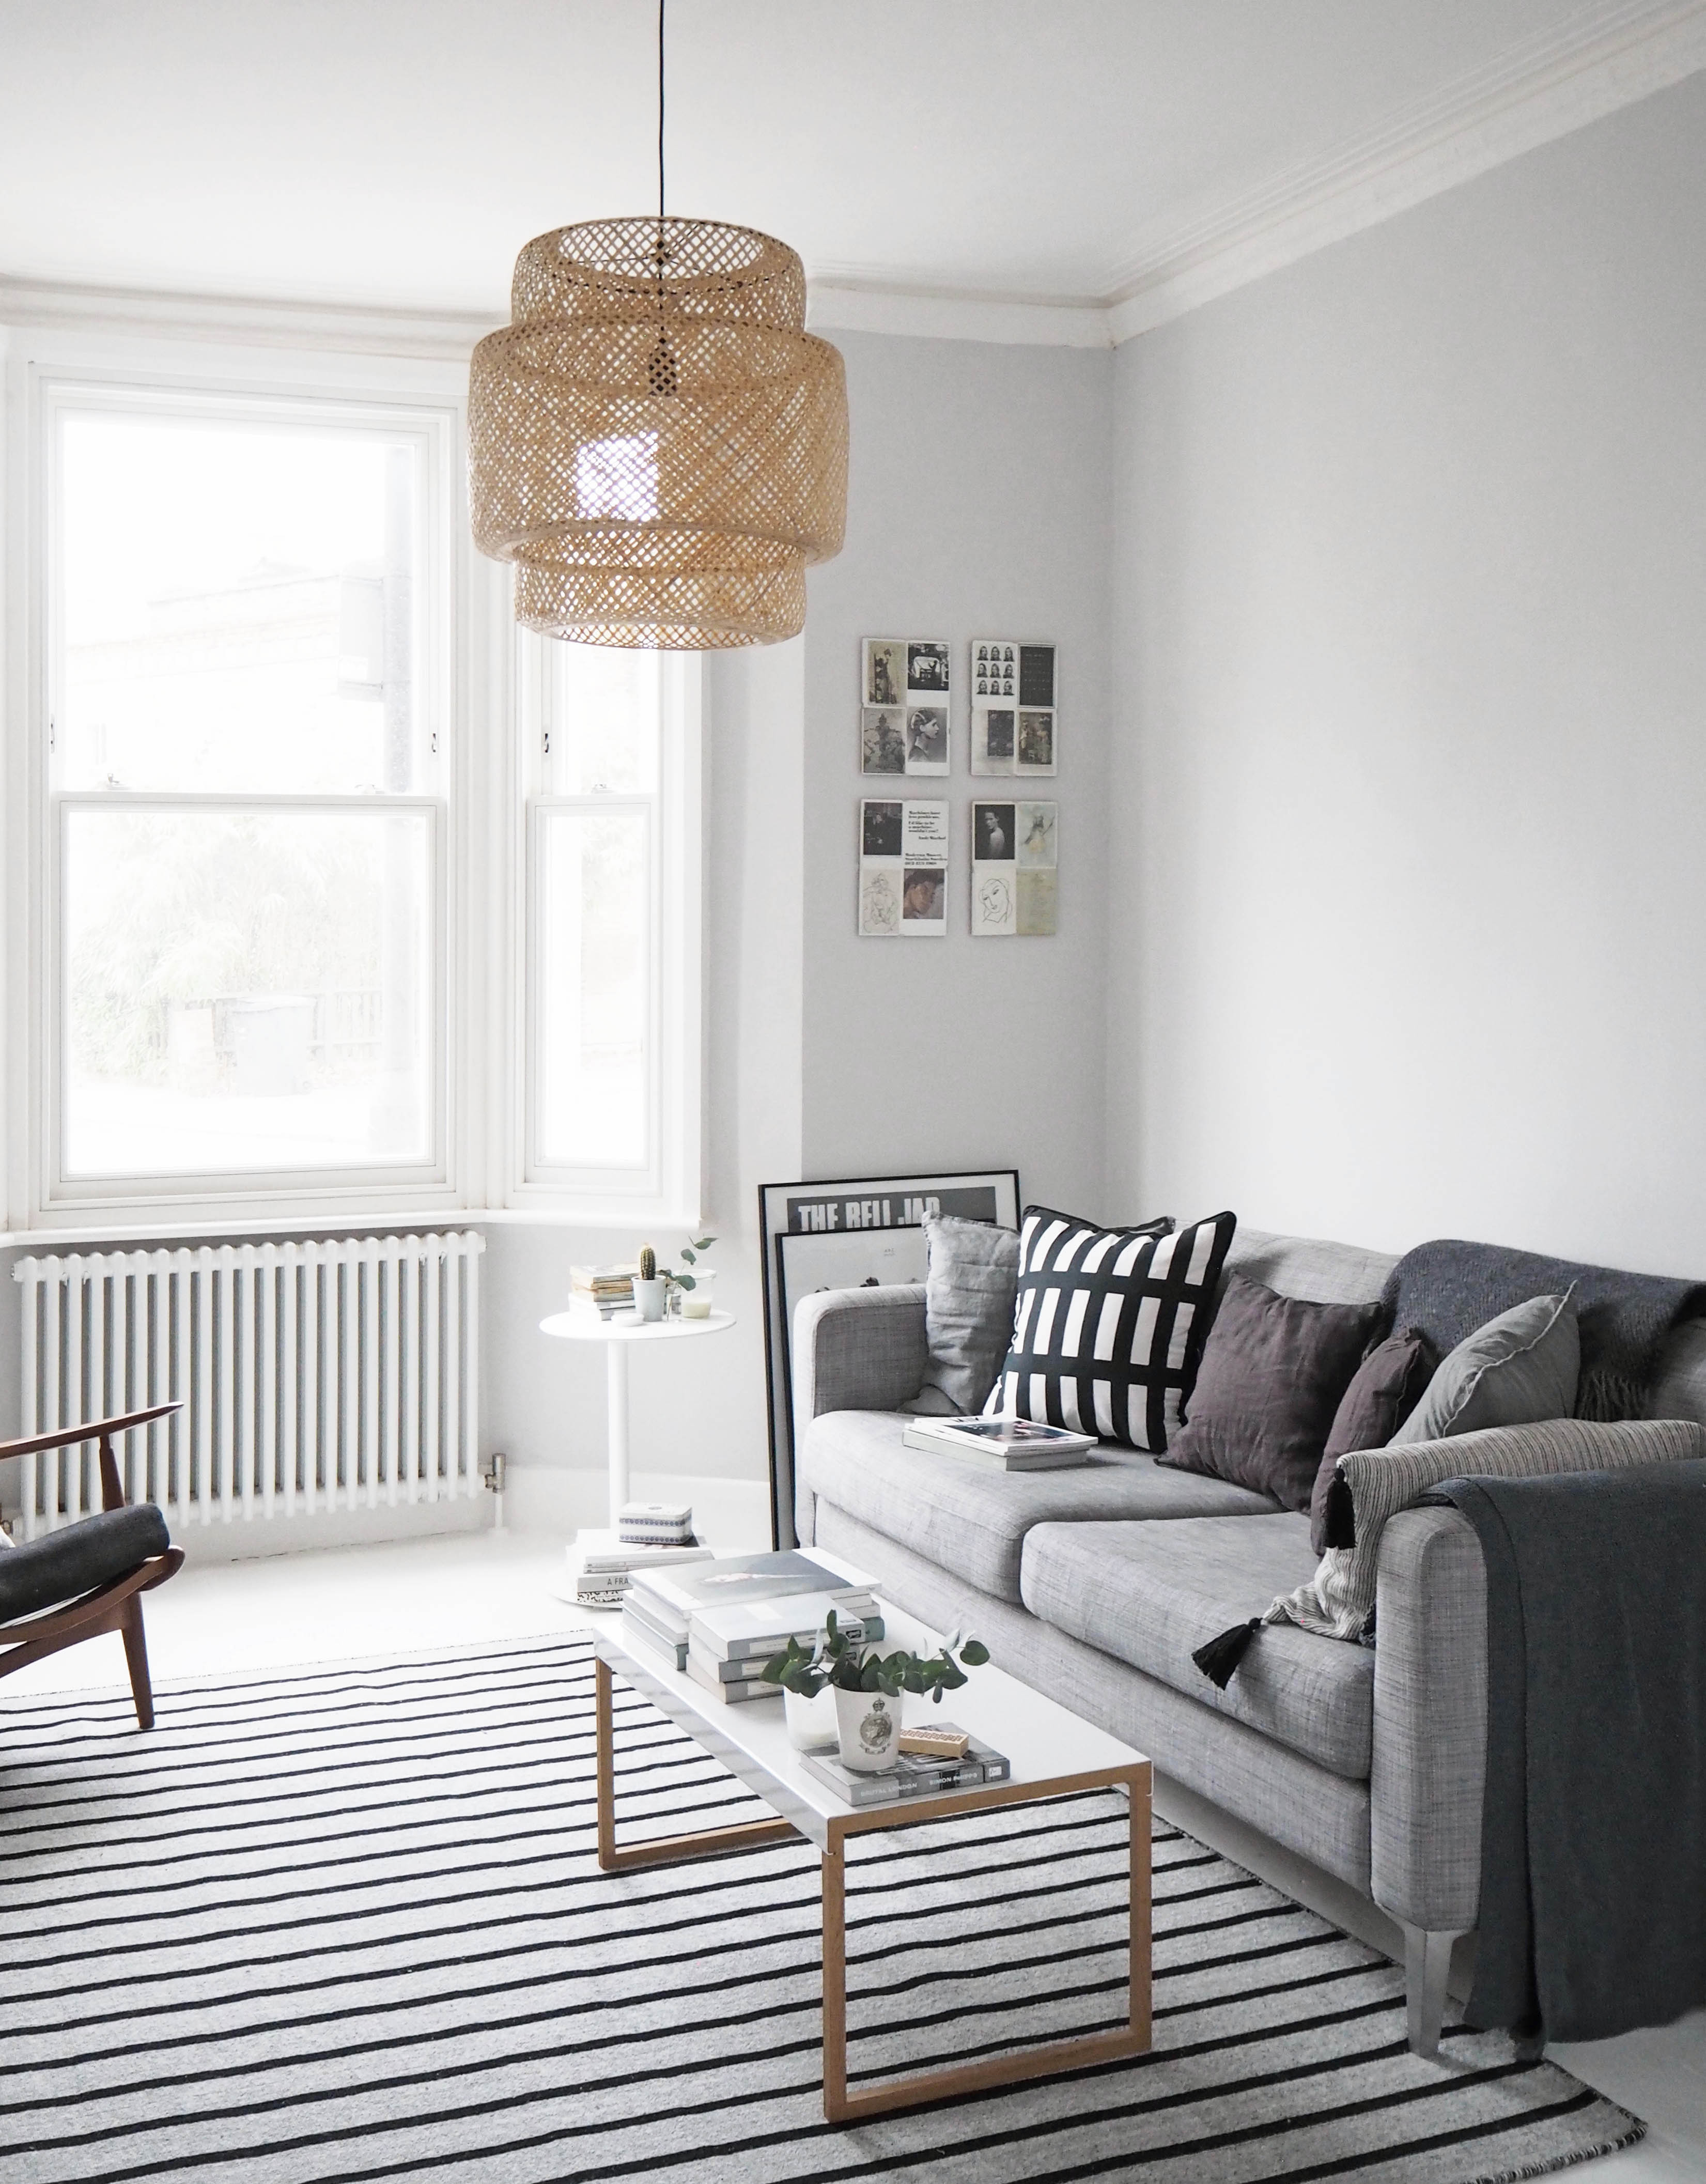 My Scandistyle living room makeover painted white floors and